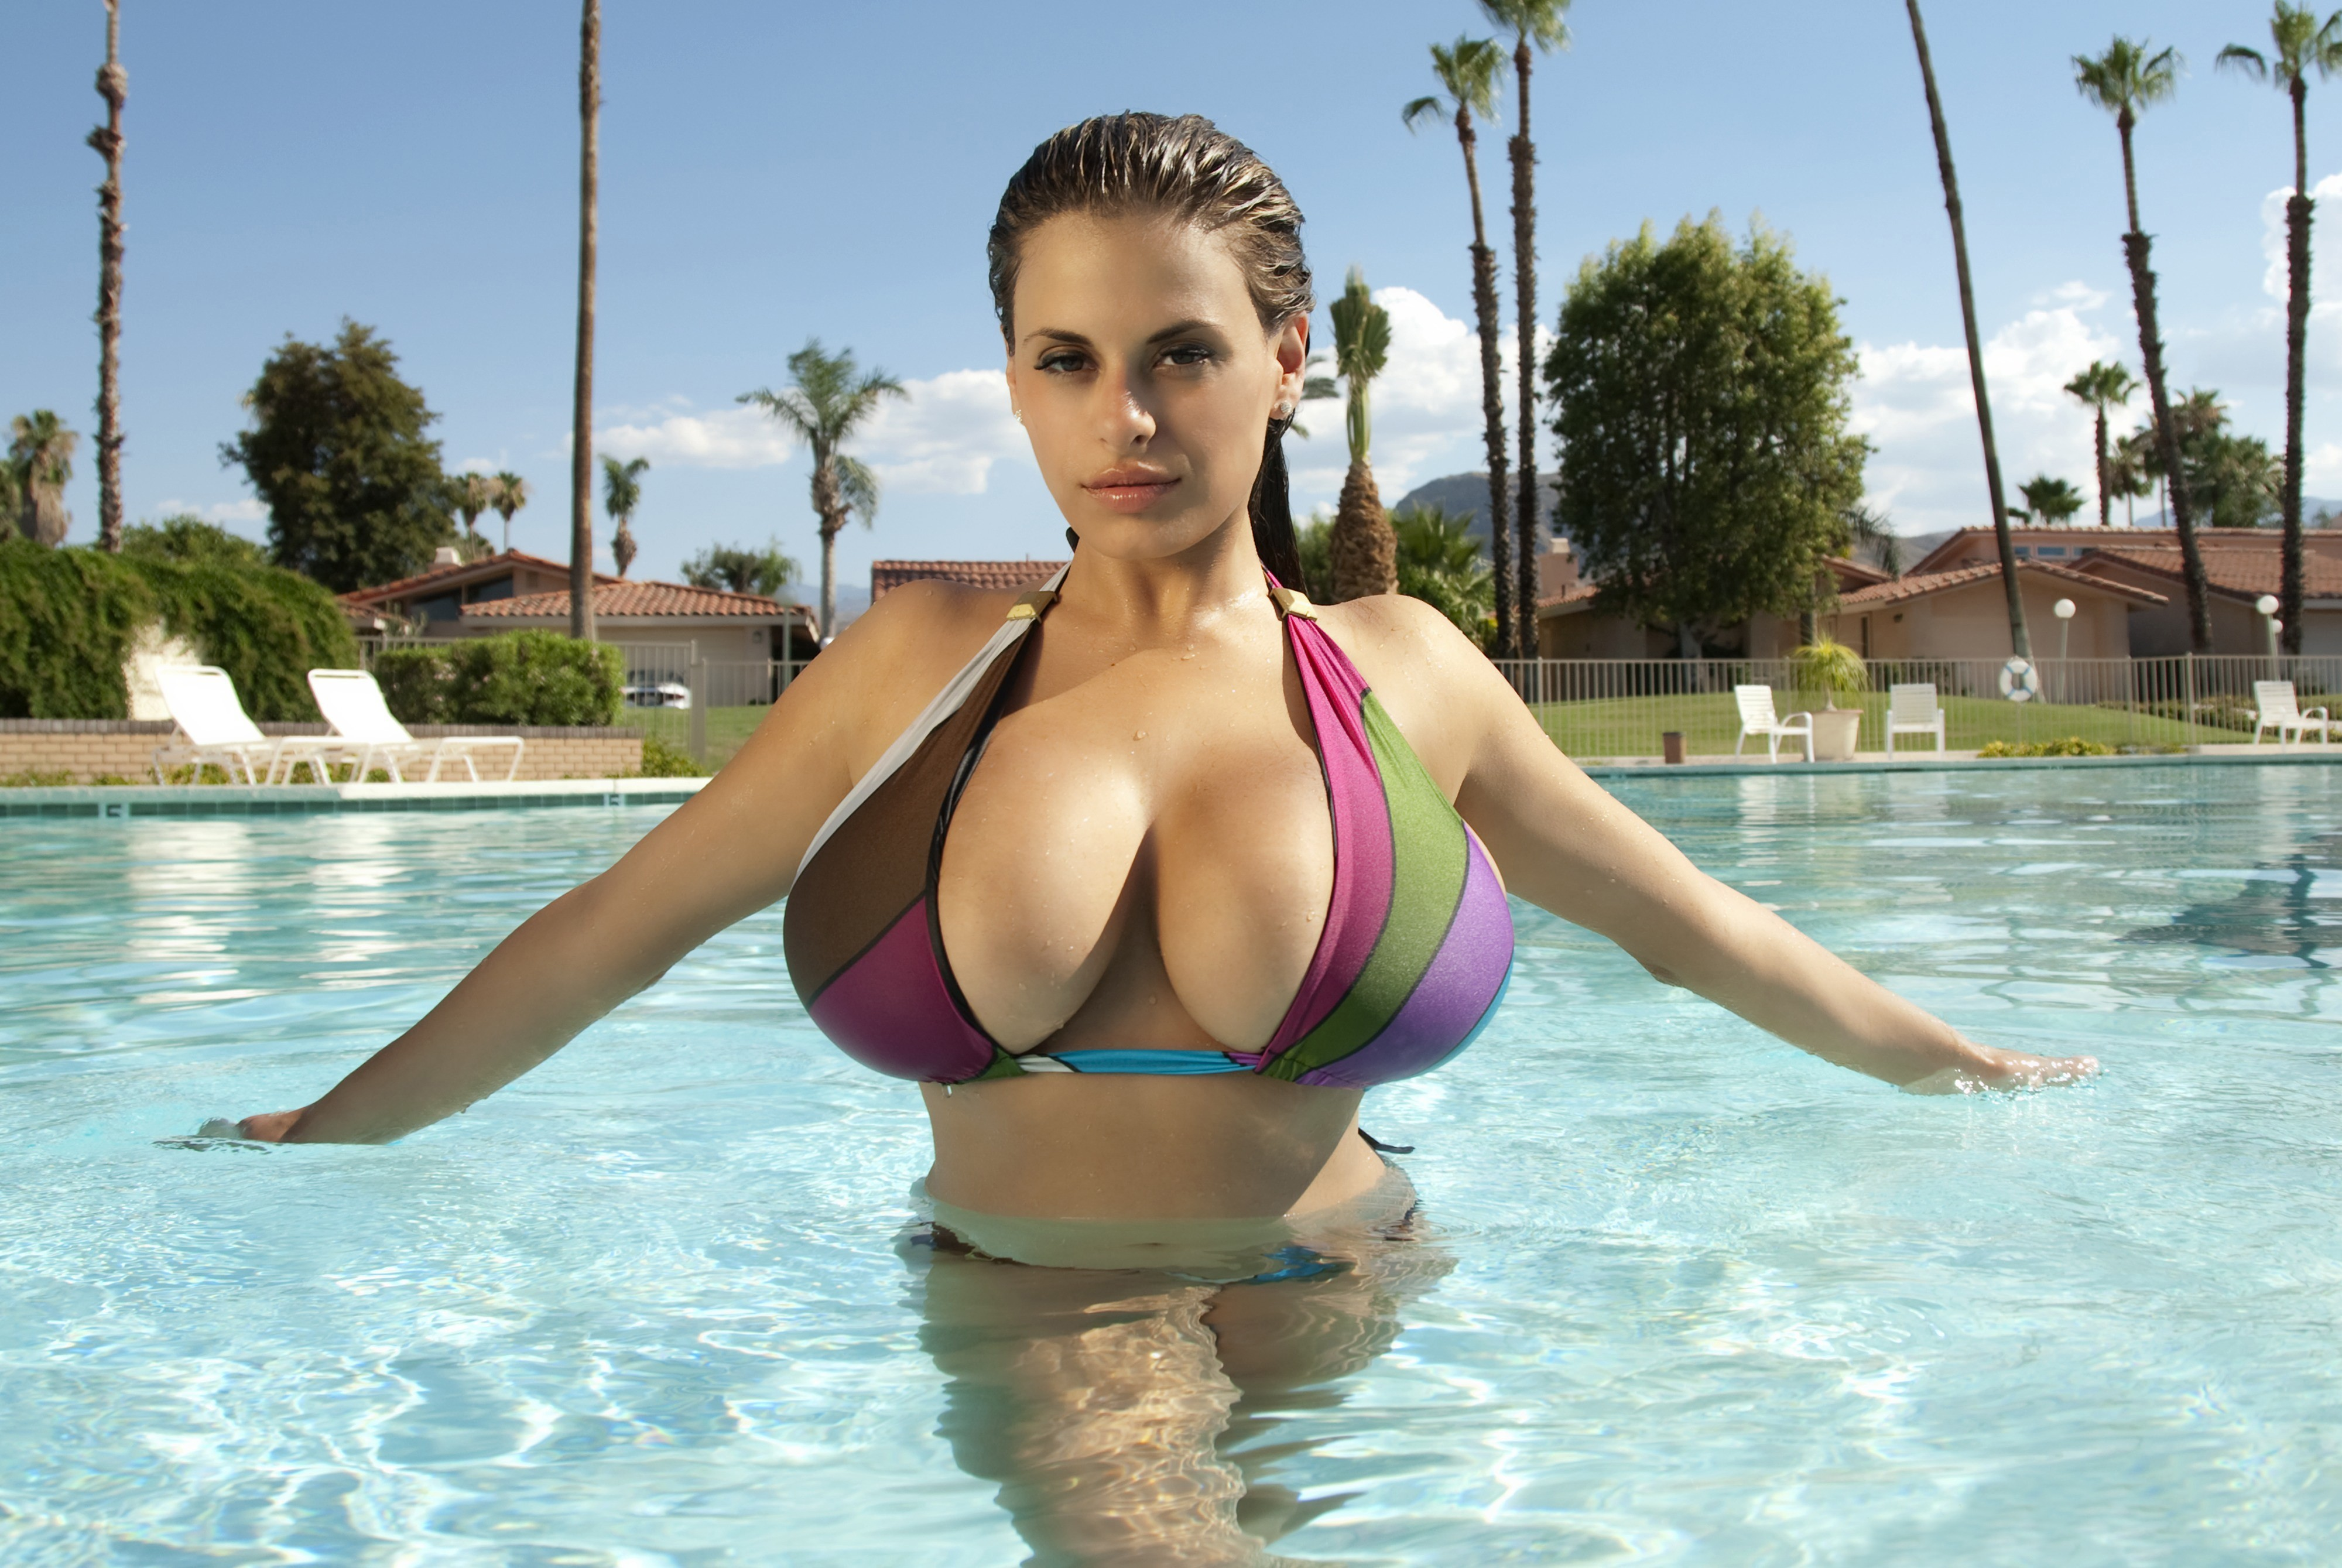 Pool game with lena paul gets xxx rated